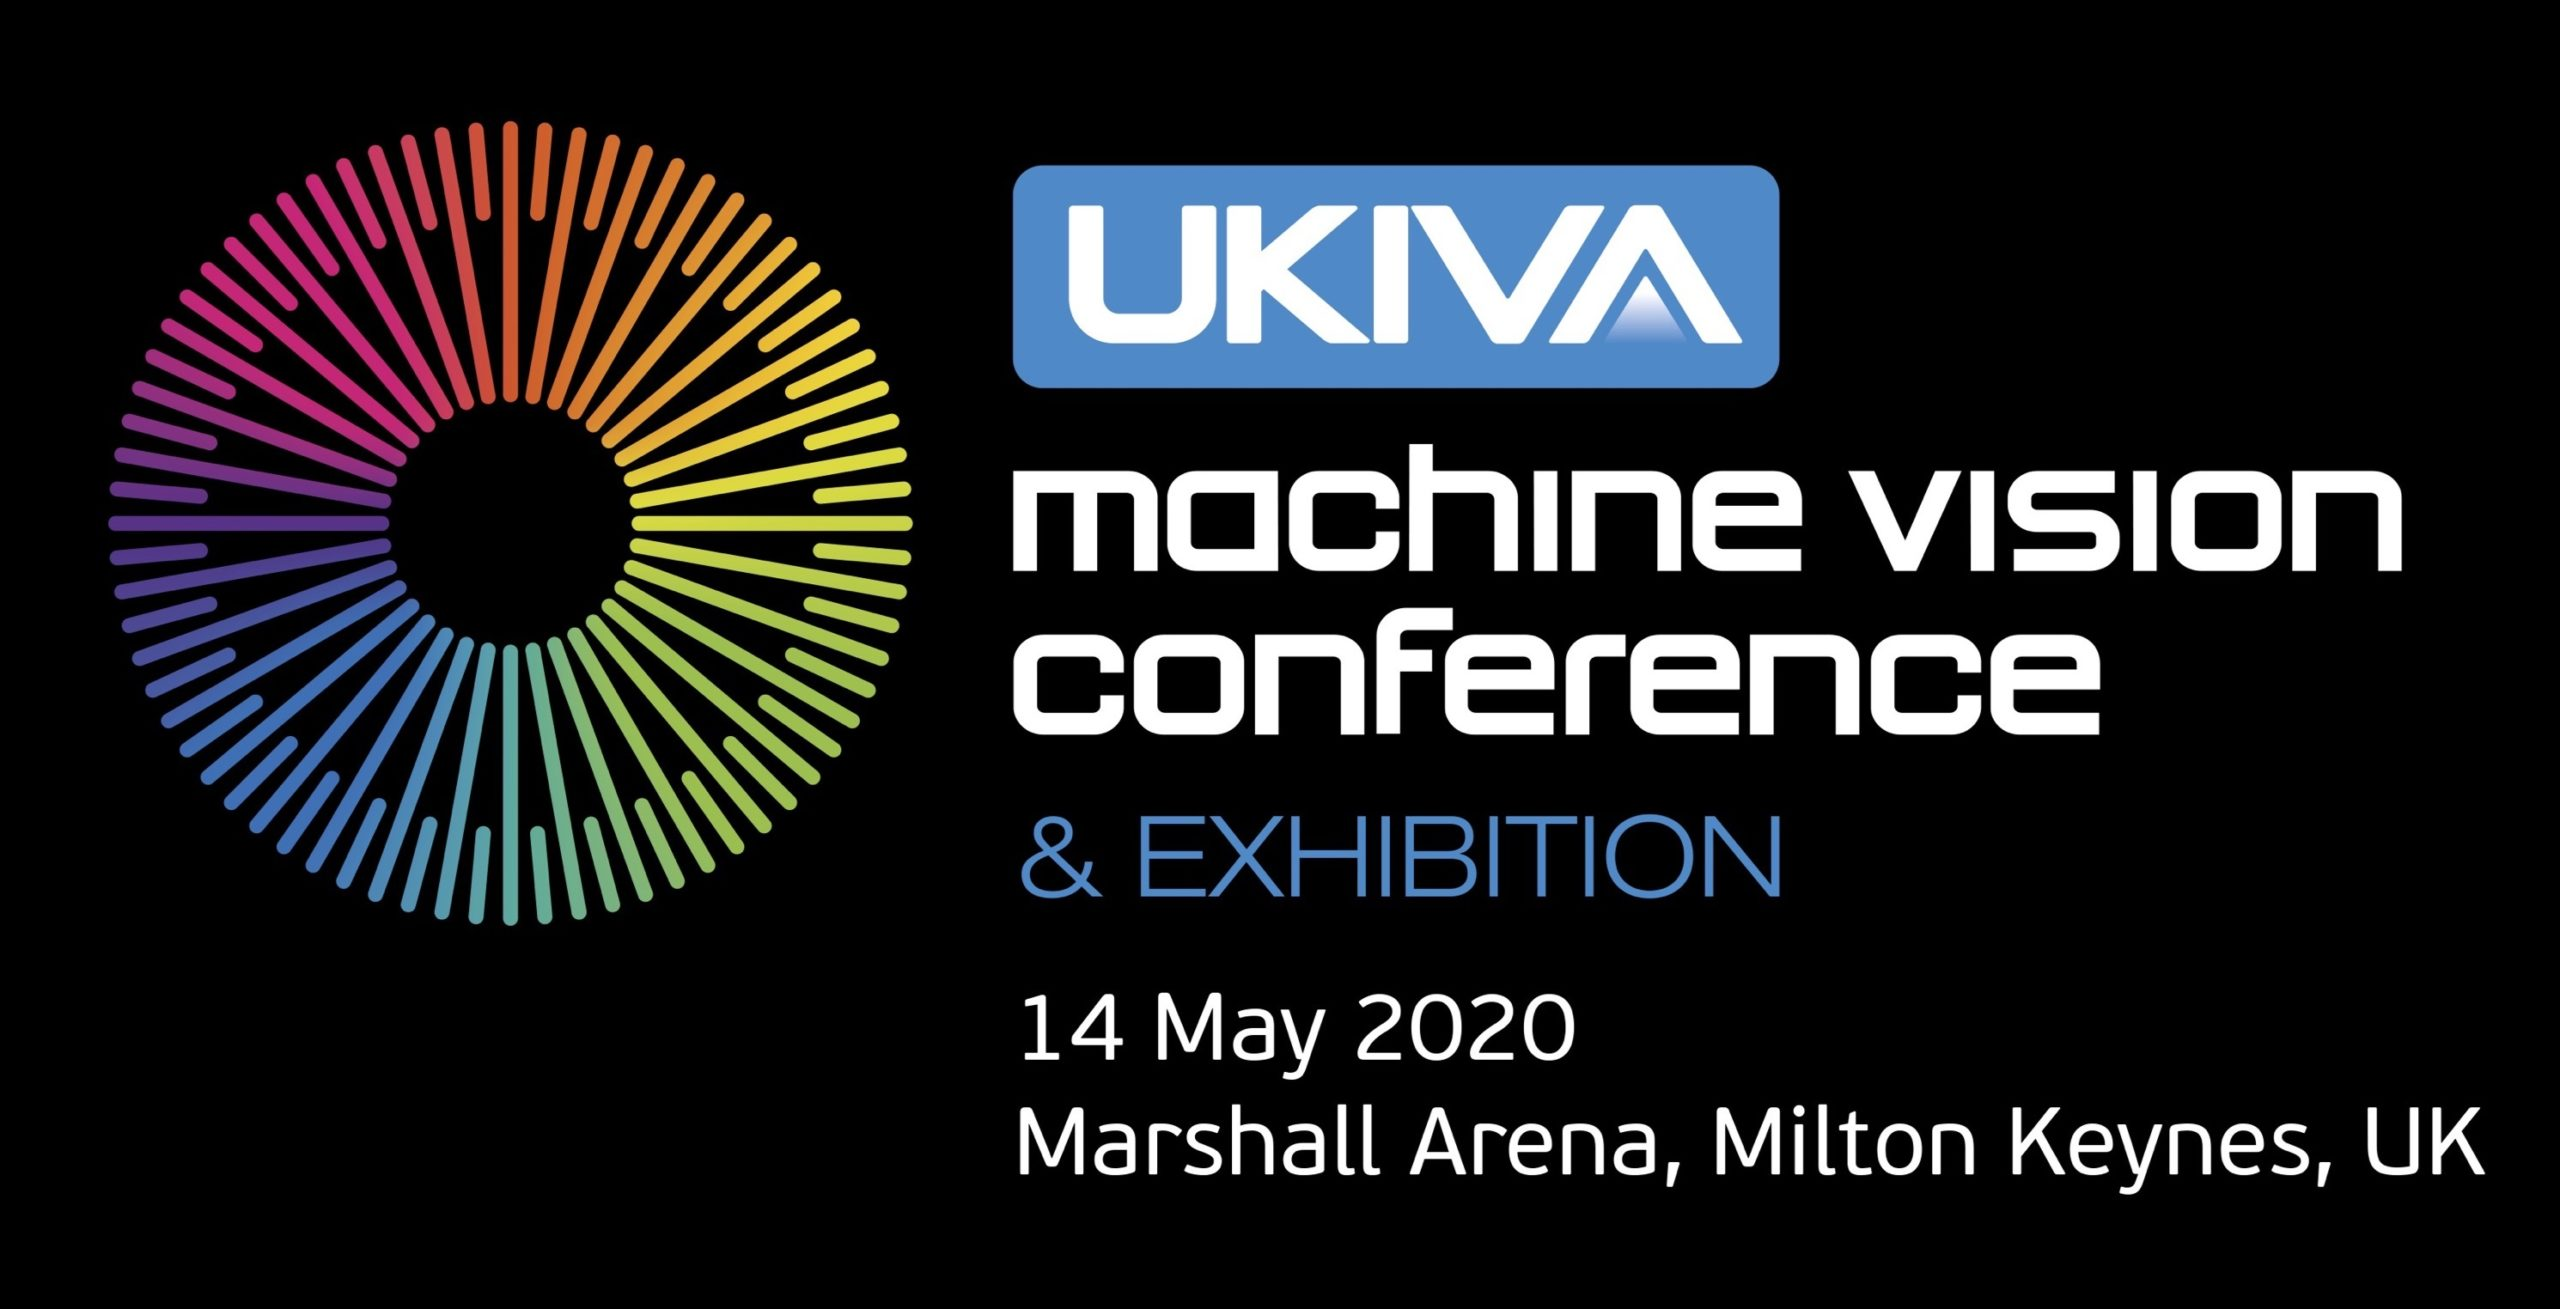 UKIVA Machine Vision Conference & Exhibition 14th May 2020